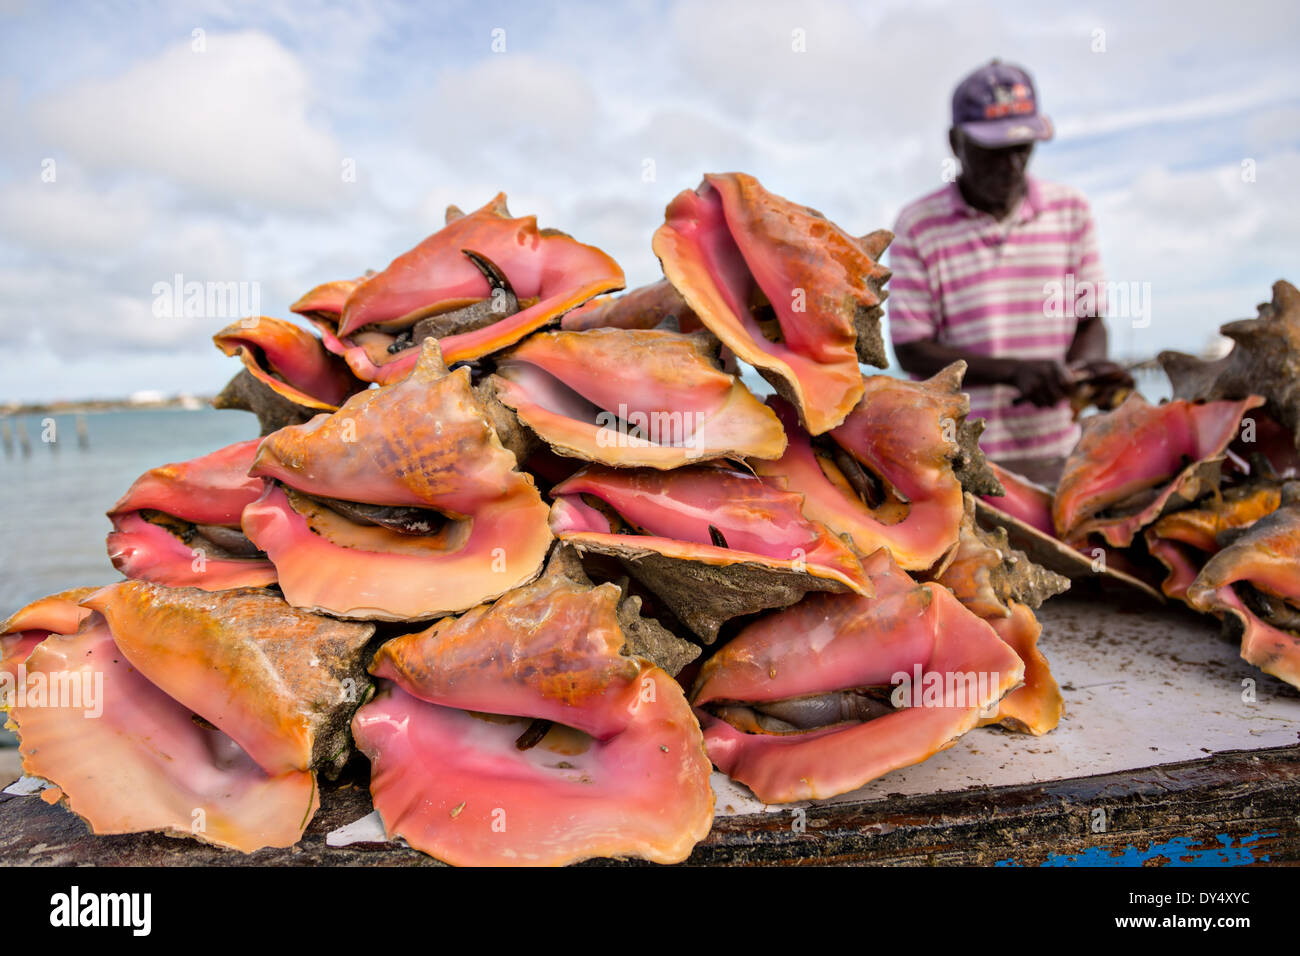 New Troipcal Fish Food On Market